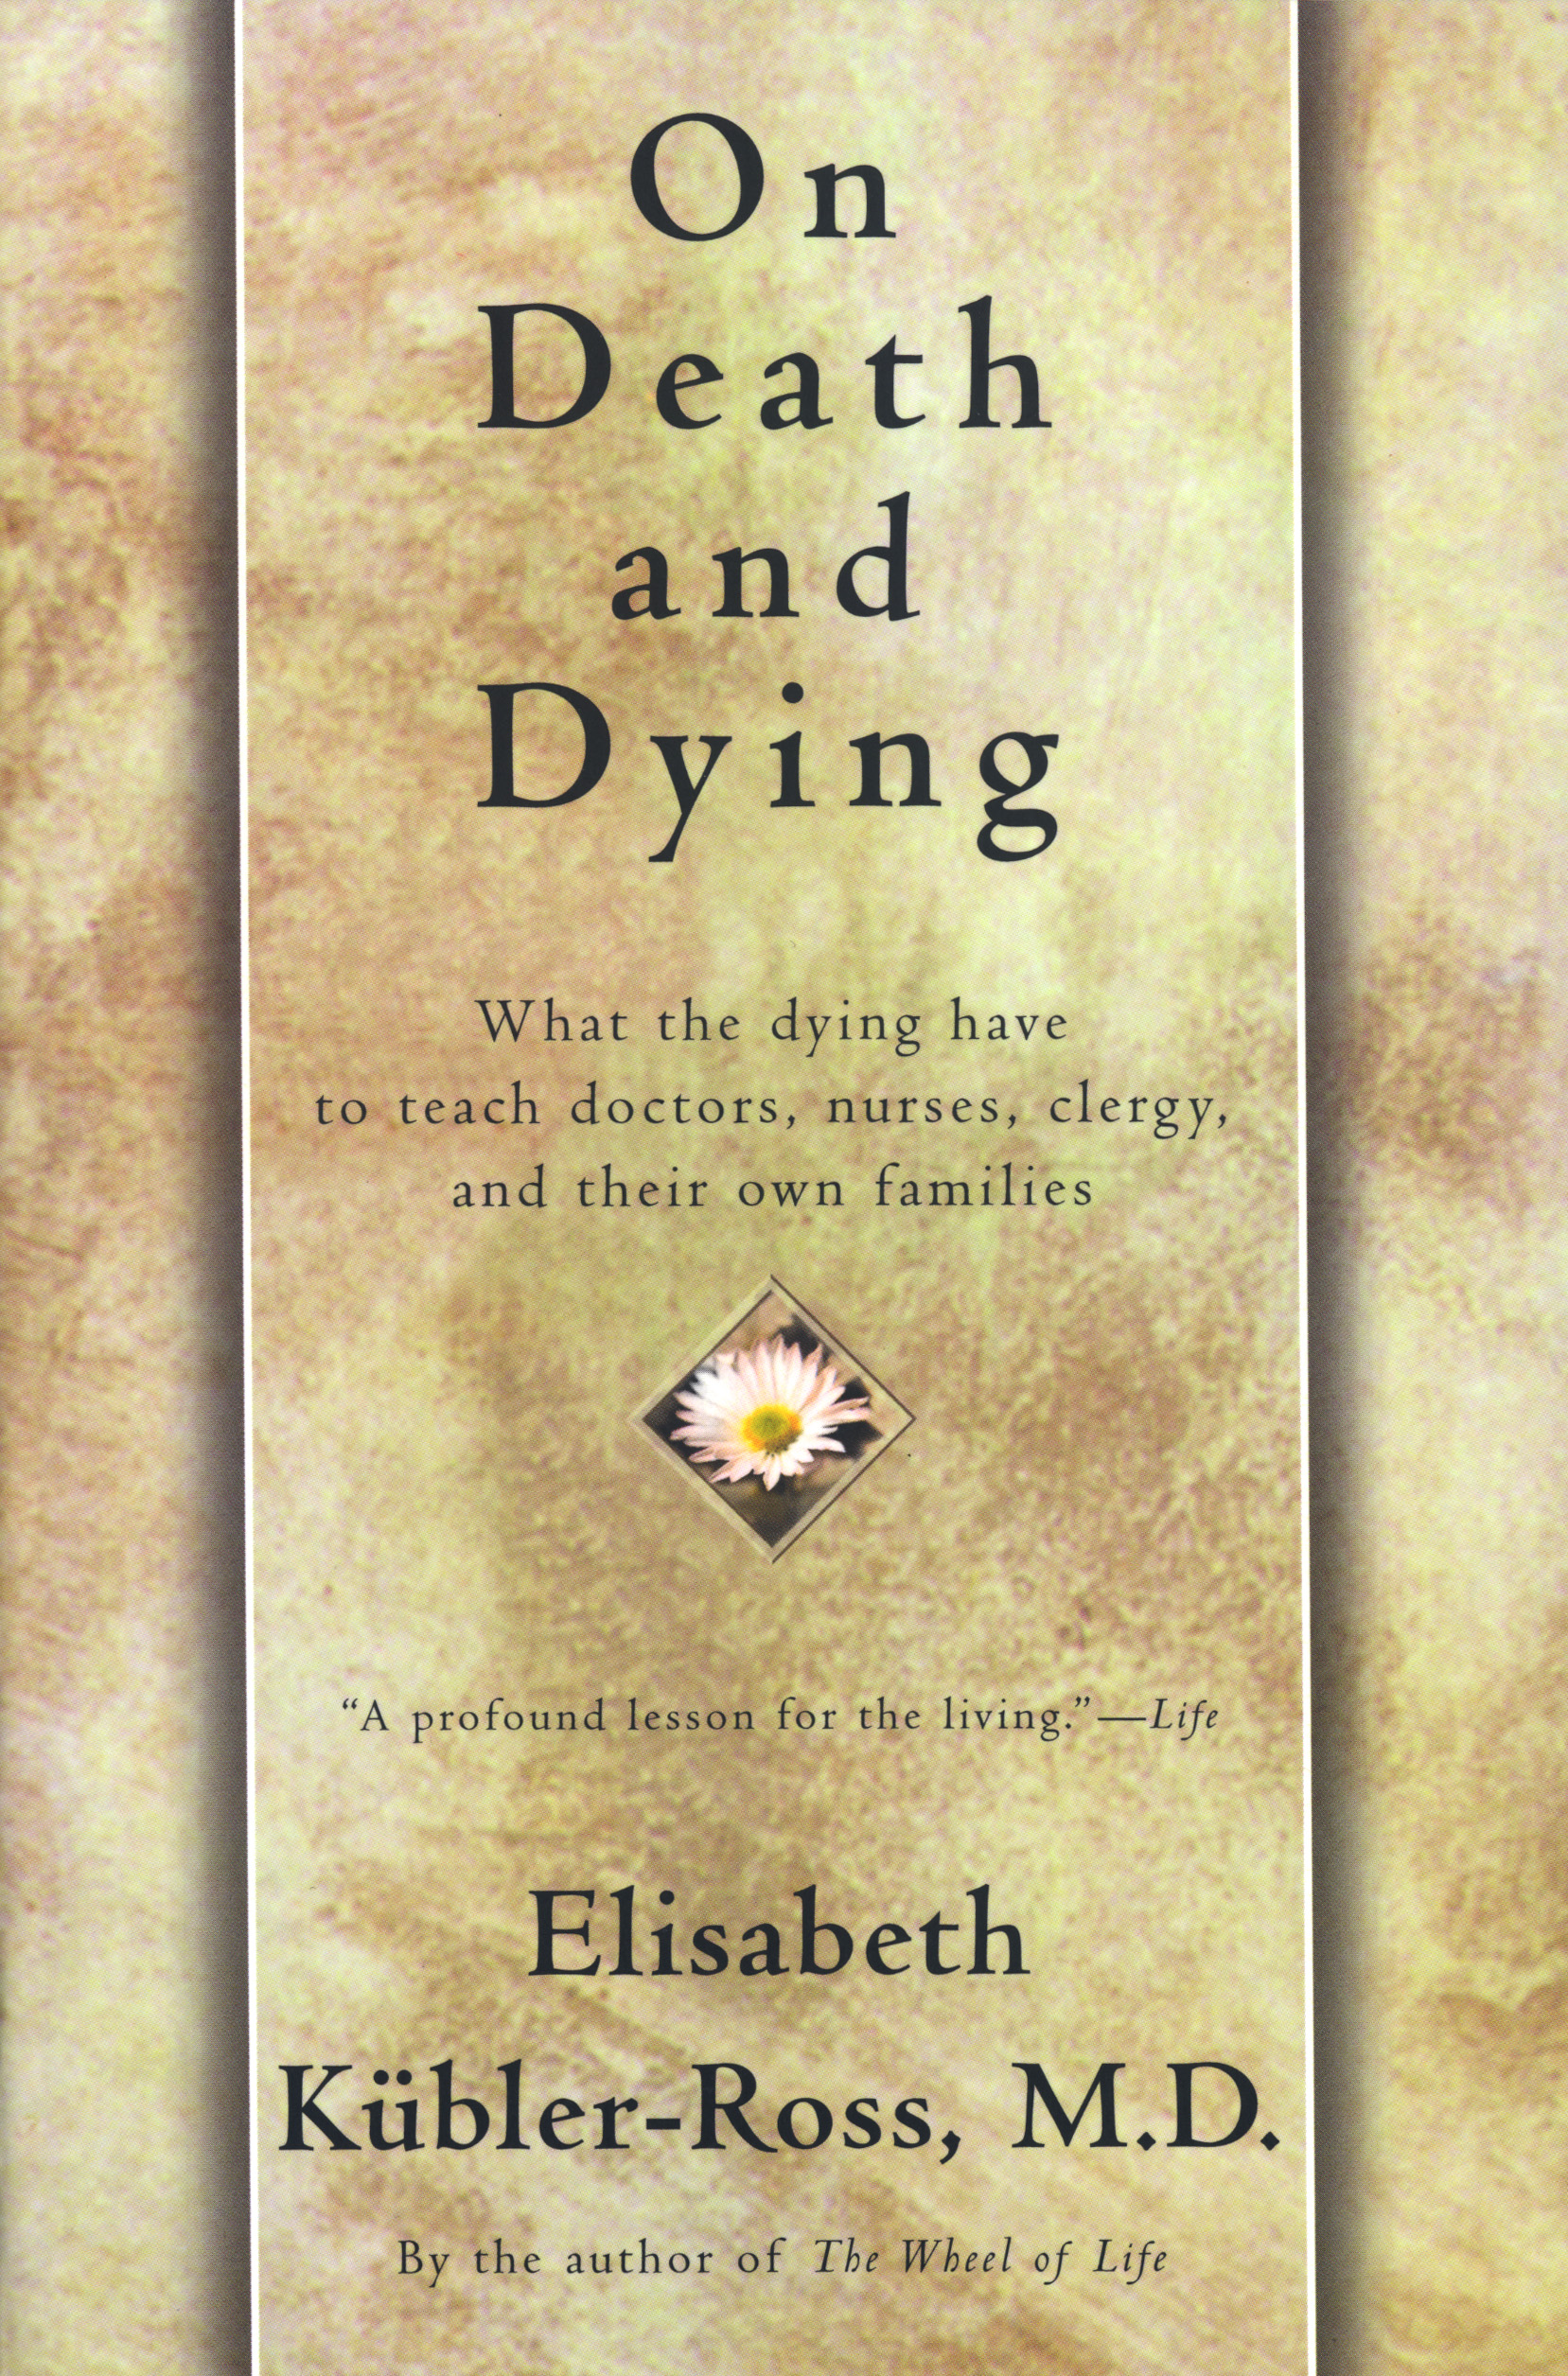 an analysis of elisabeth kubler rosss book death and dying On death and dying : ten years after elisabeth k#65533bler-ross's death in this remarkable book, dr k#65533bler-ross first explored the now-famous five.